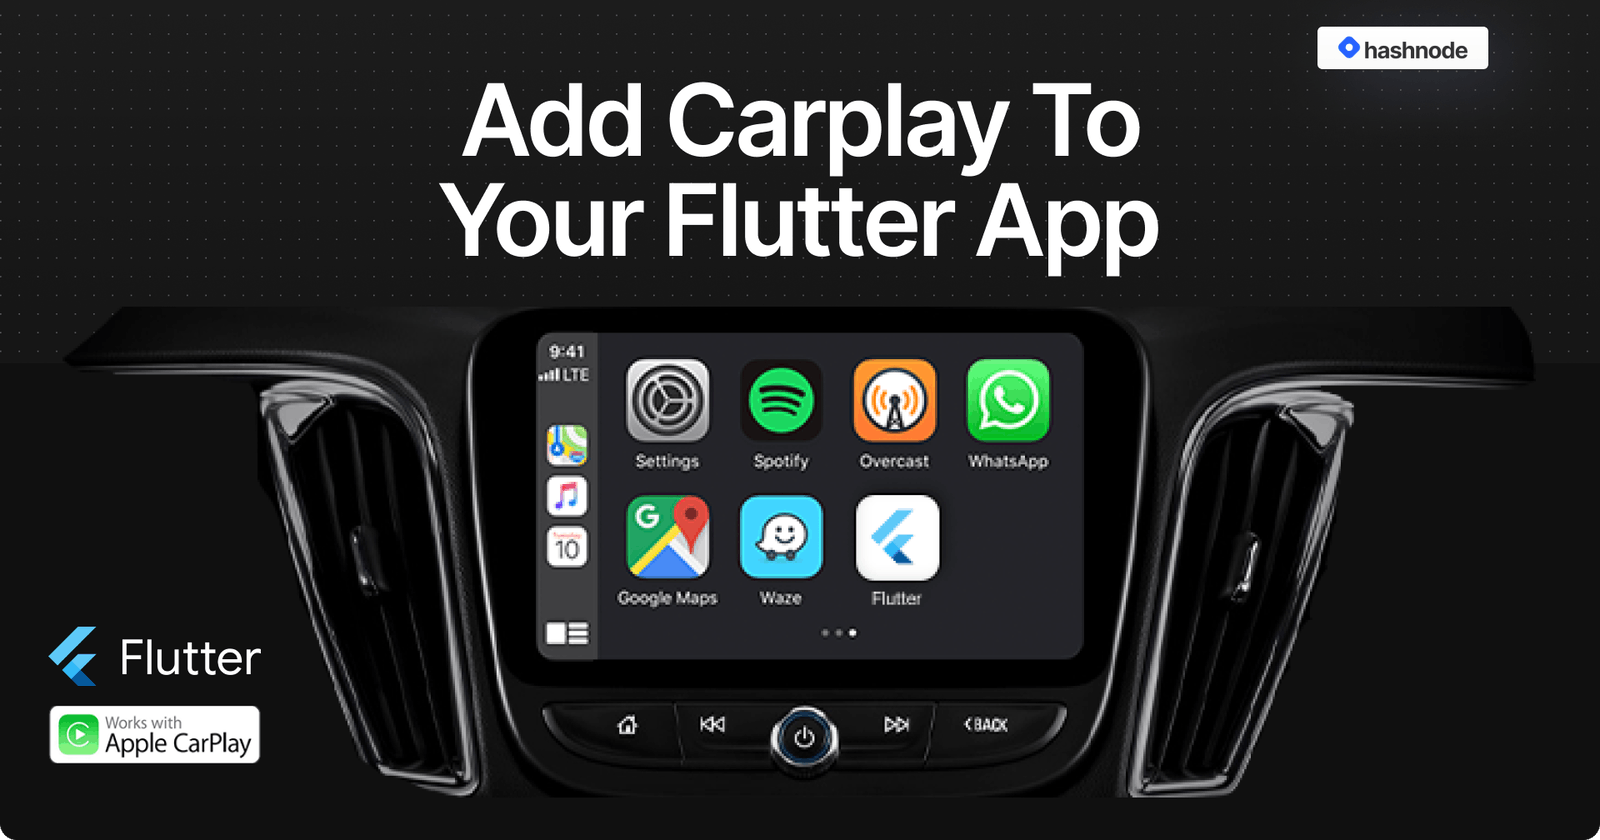 Add CarPlay to your Flutter App 🚗